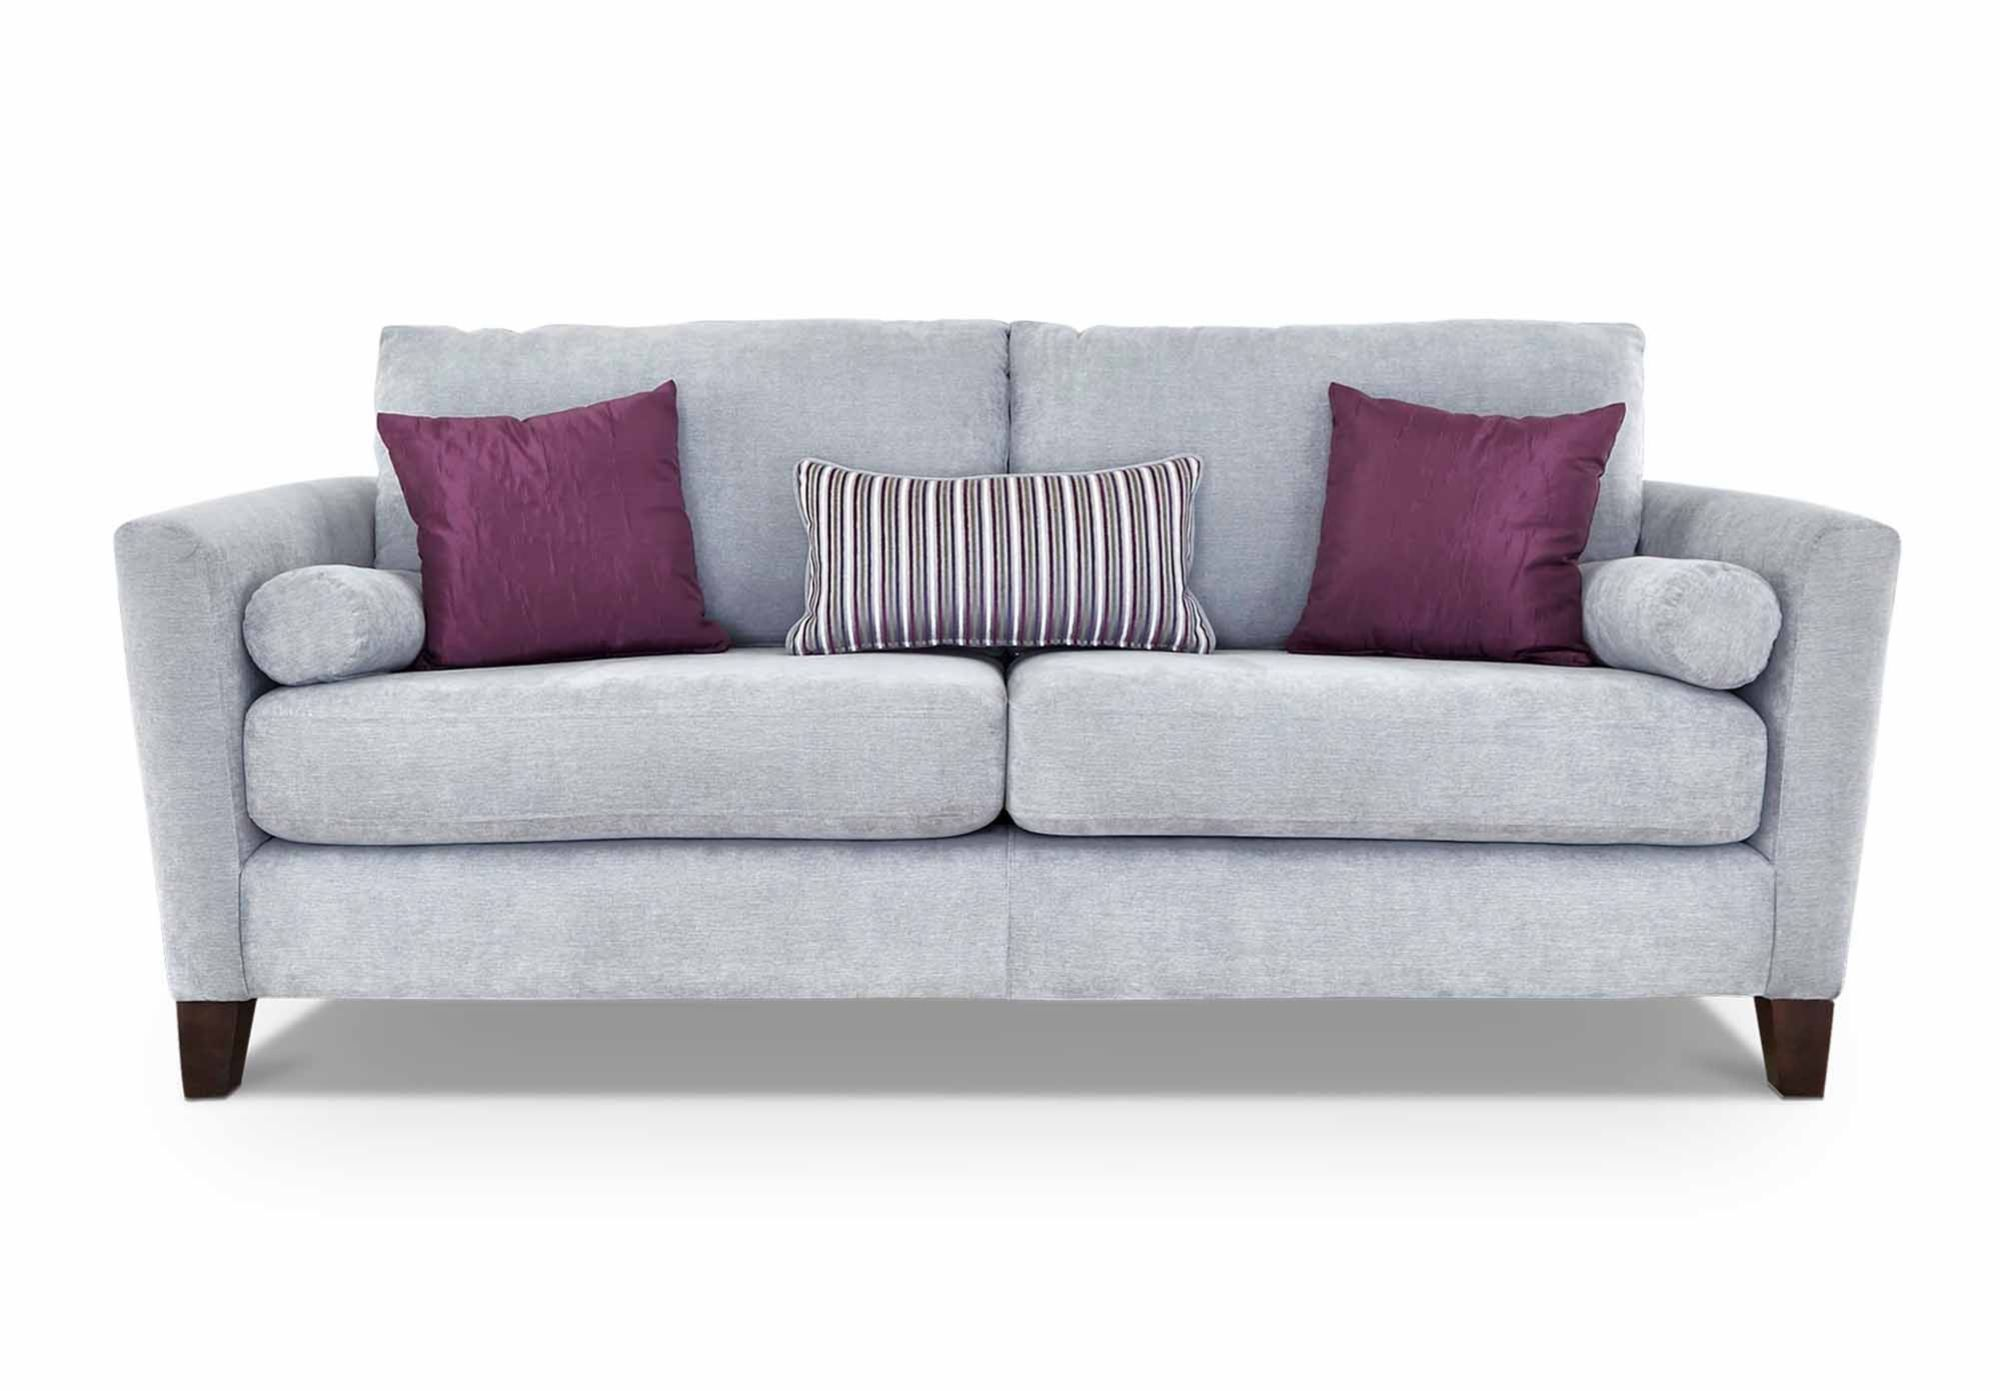 Furniture Village Armchairs 3 seater sofa - mezzo - living room furniture | sofas and